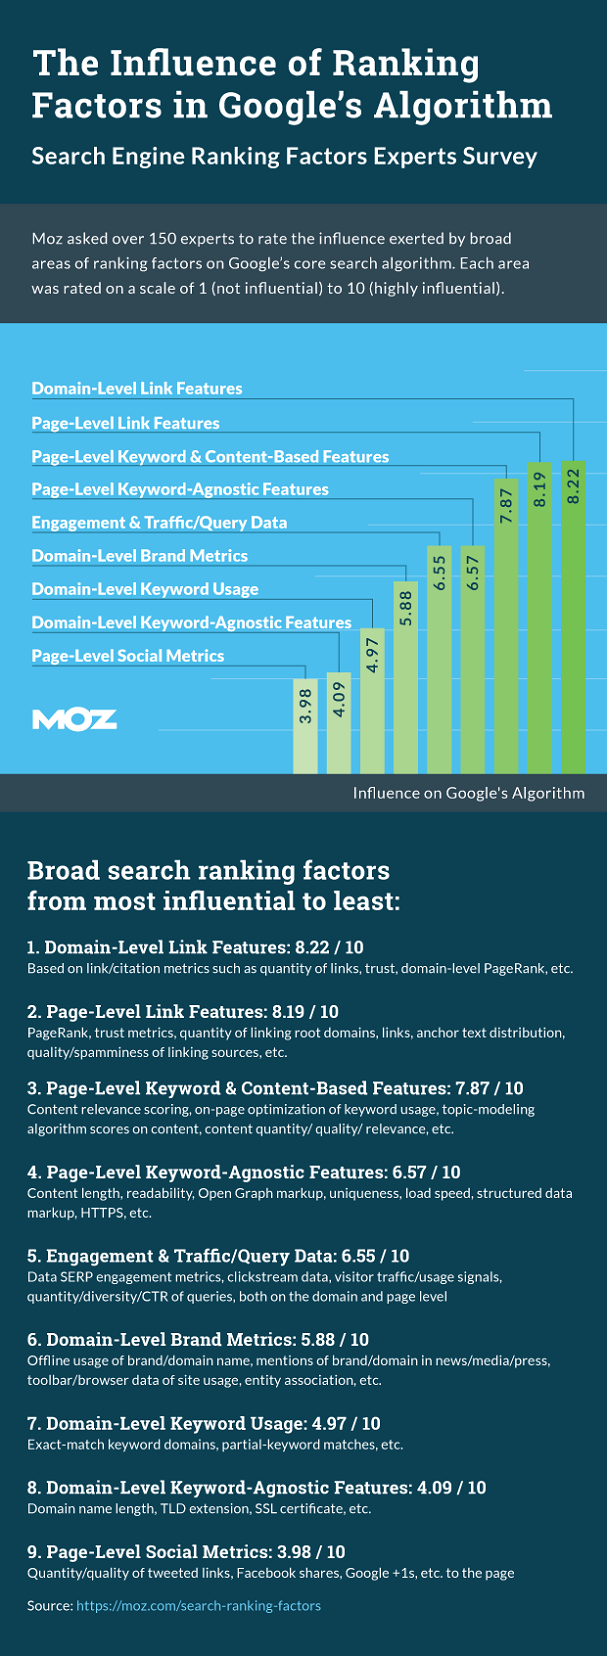 rankingfactors-results-overview-moz-survey